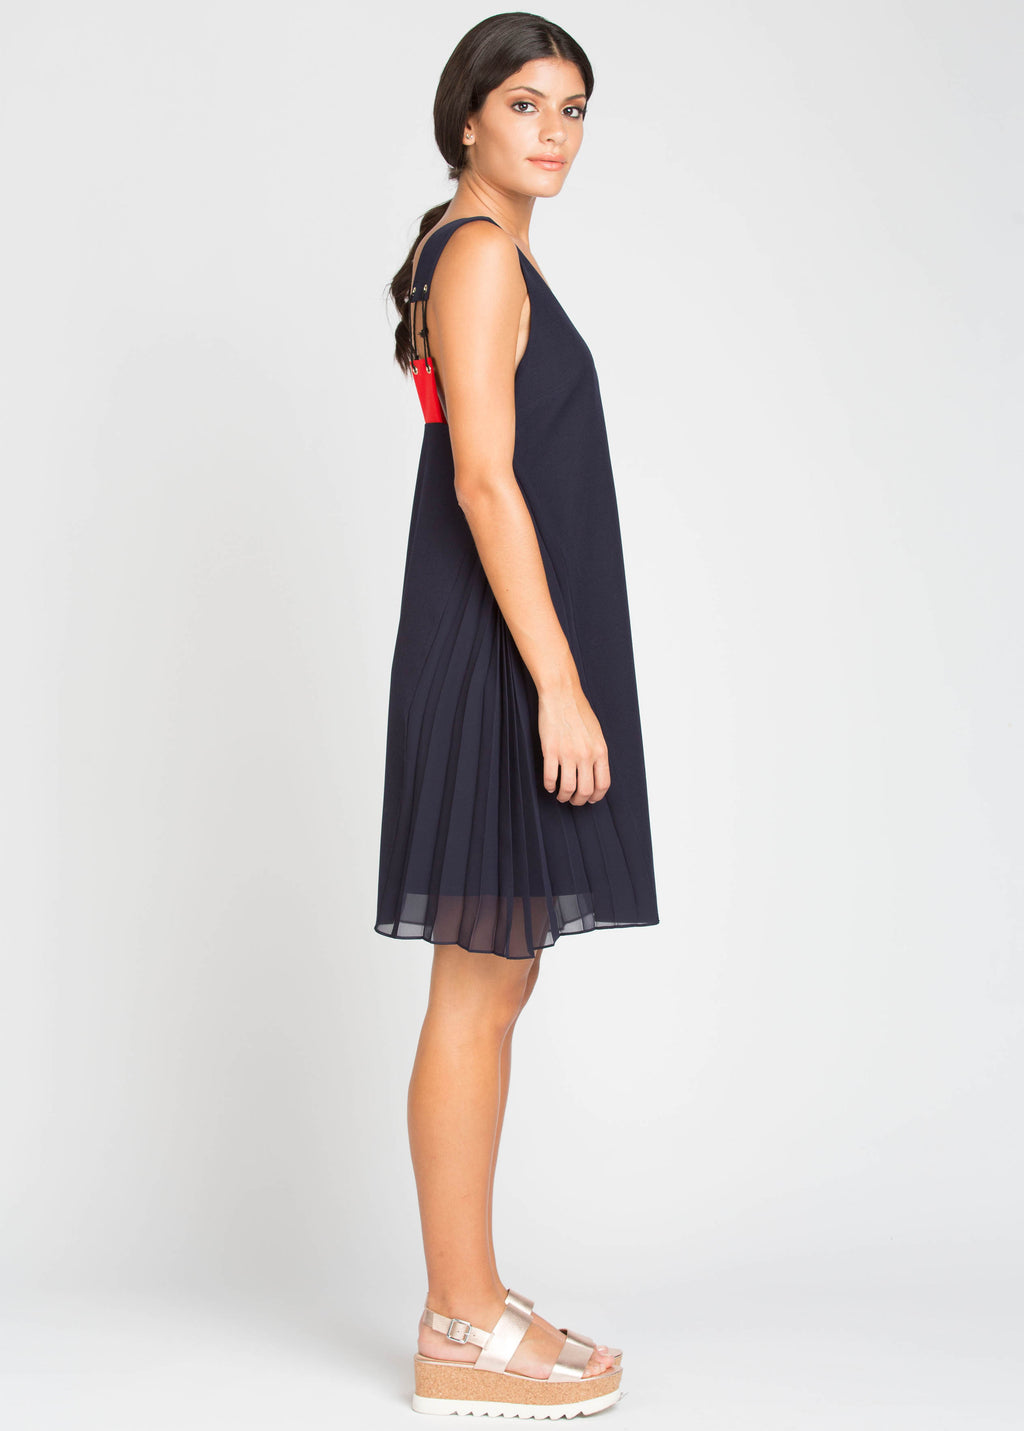 Maryline Dress - Navy/Red